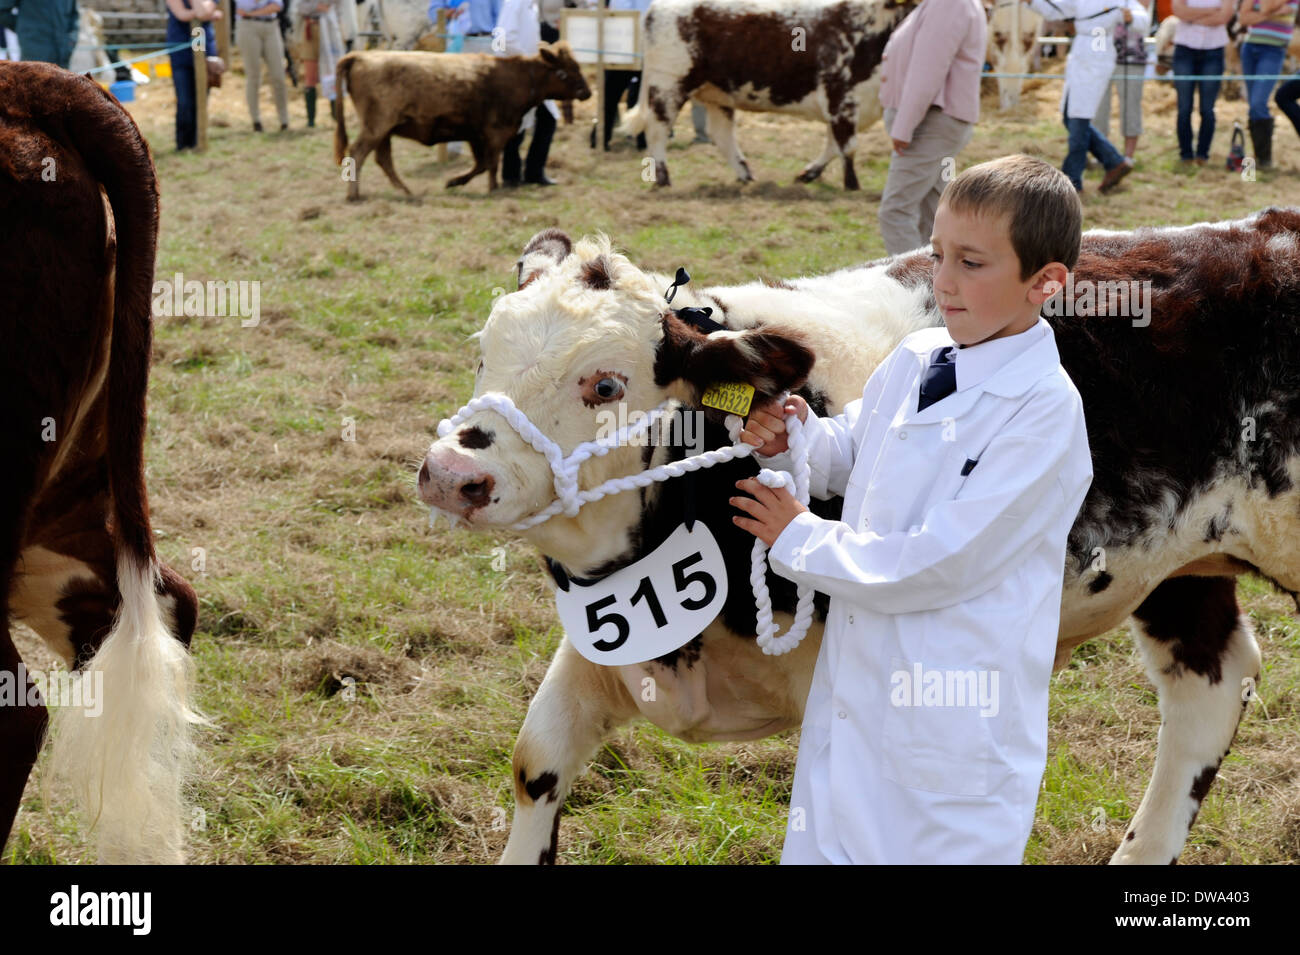 Young cattle handler sows prize hereford calf at  Melplash Agricultural Show,  Bridport Dorset - Stock Image